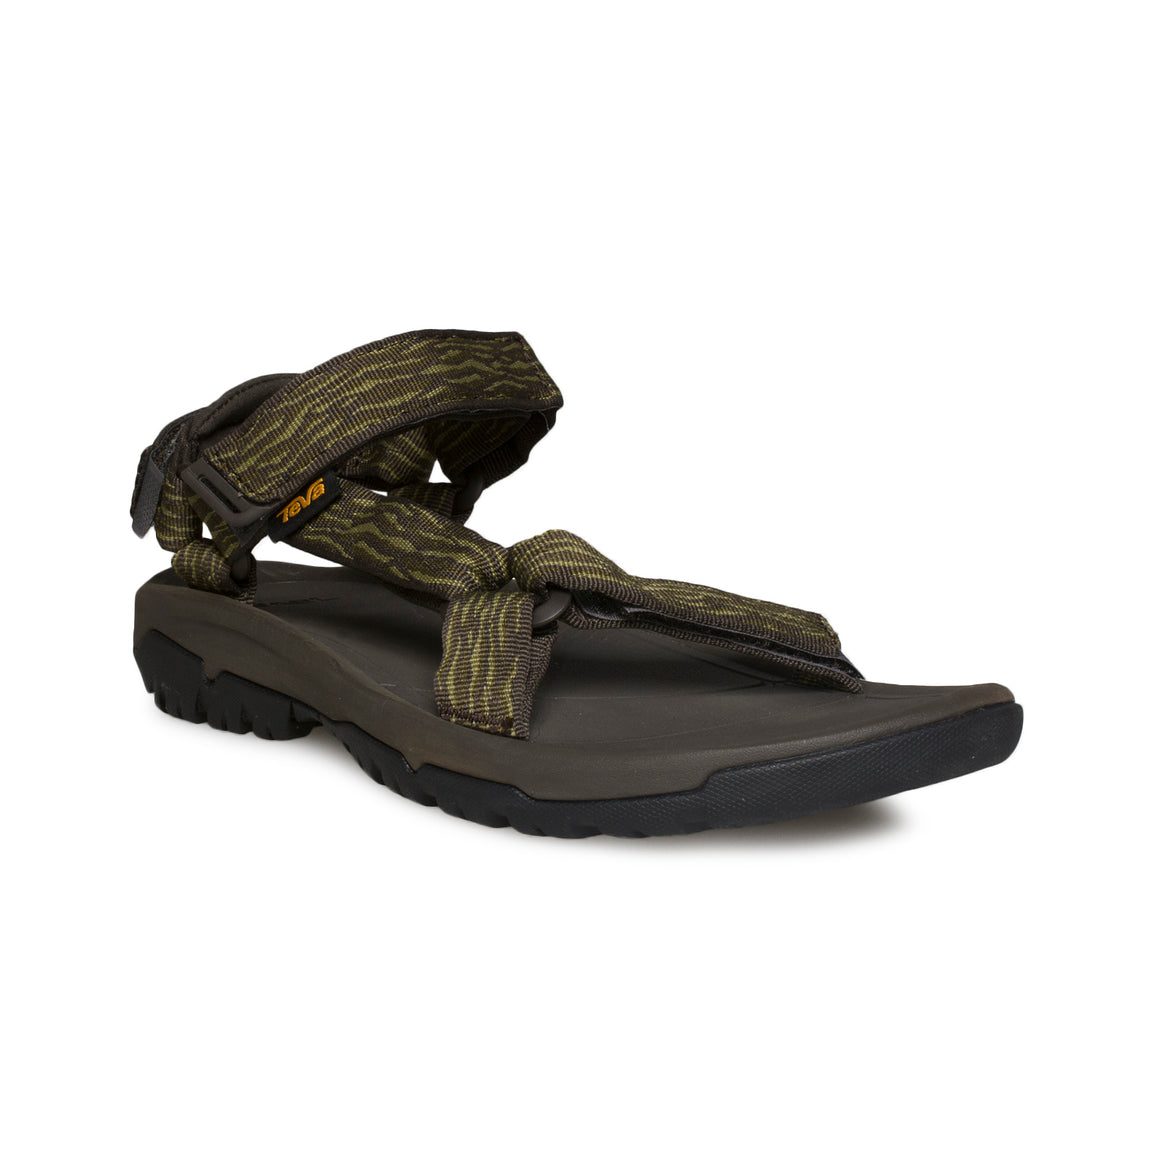 Teva Hurricane XLT 2 Rapids Black Olive Sandals - Men's